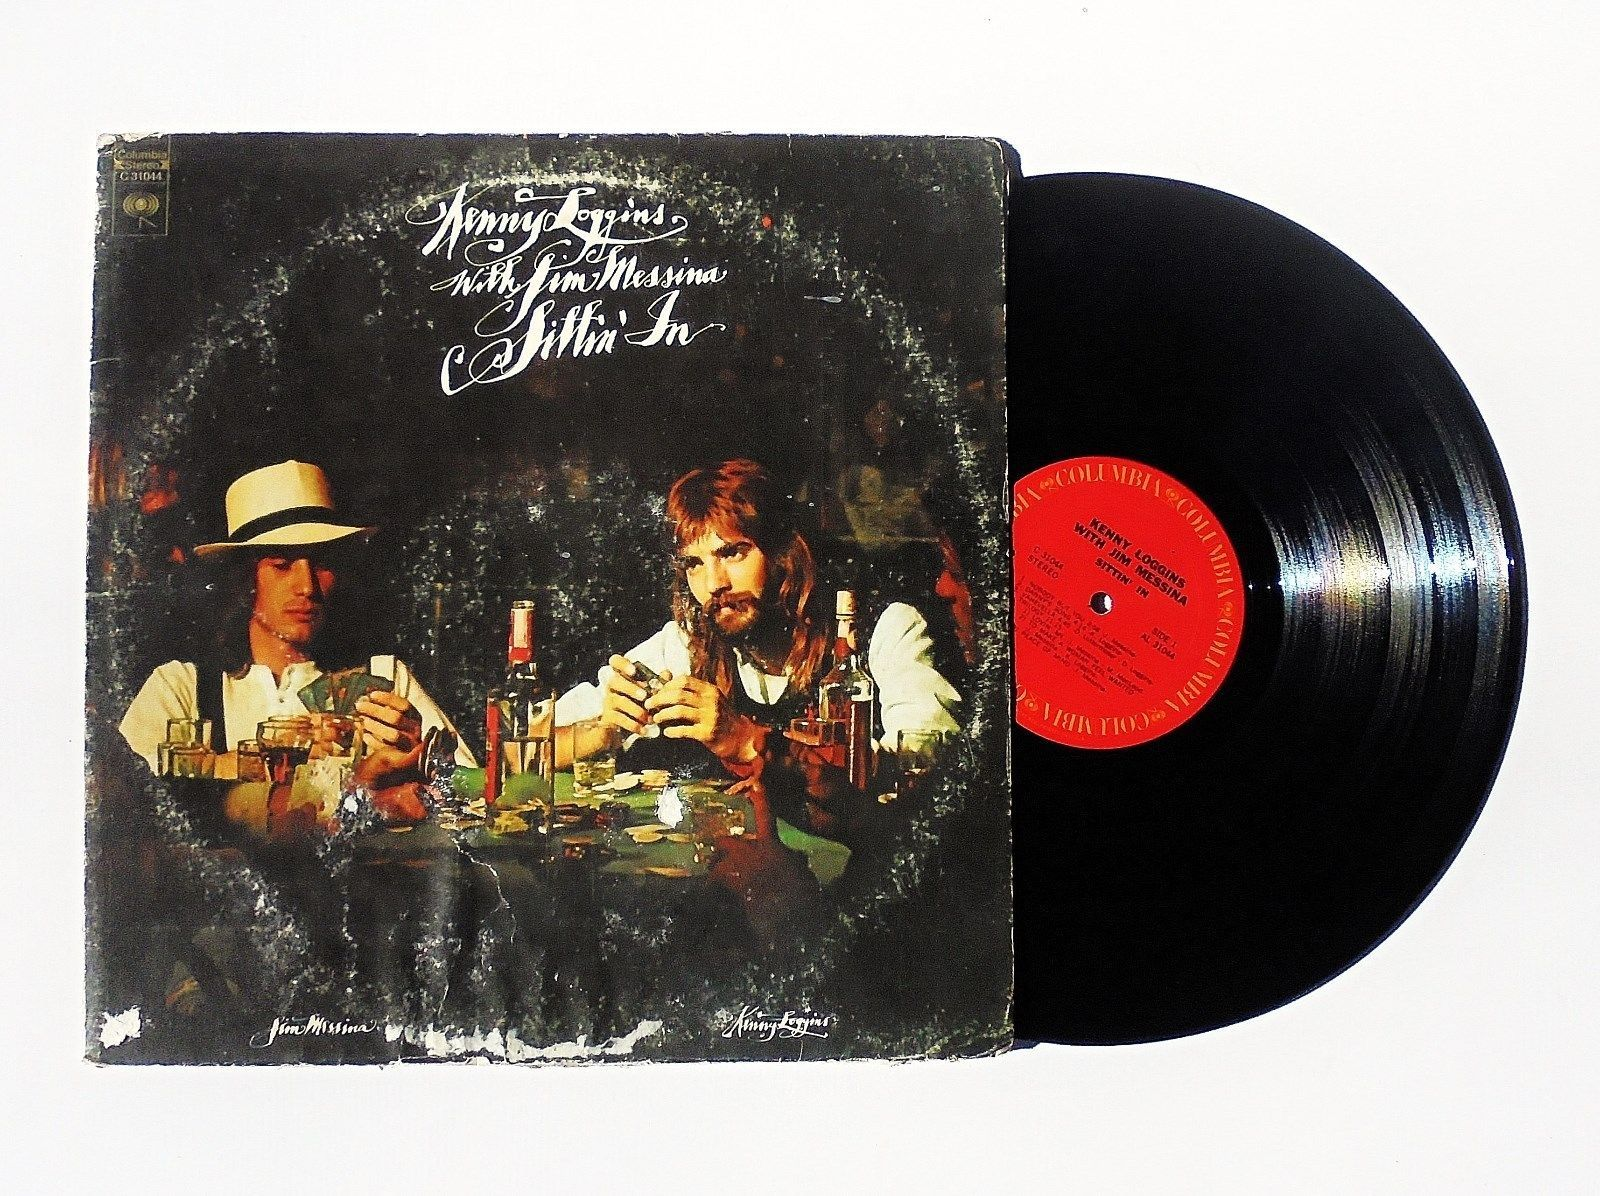 Kenny Loggins with Jim Messina: Sittin' In Vinyl Record Album (1971, Columbia)